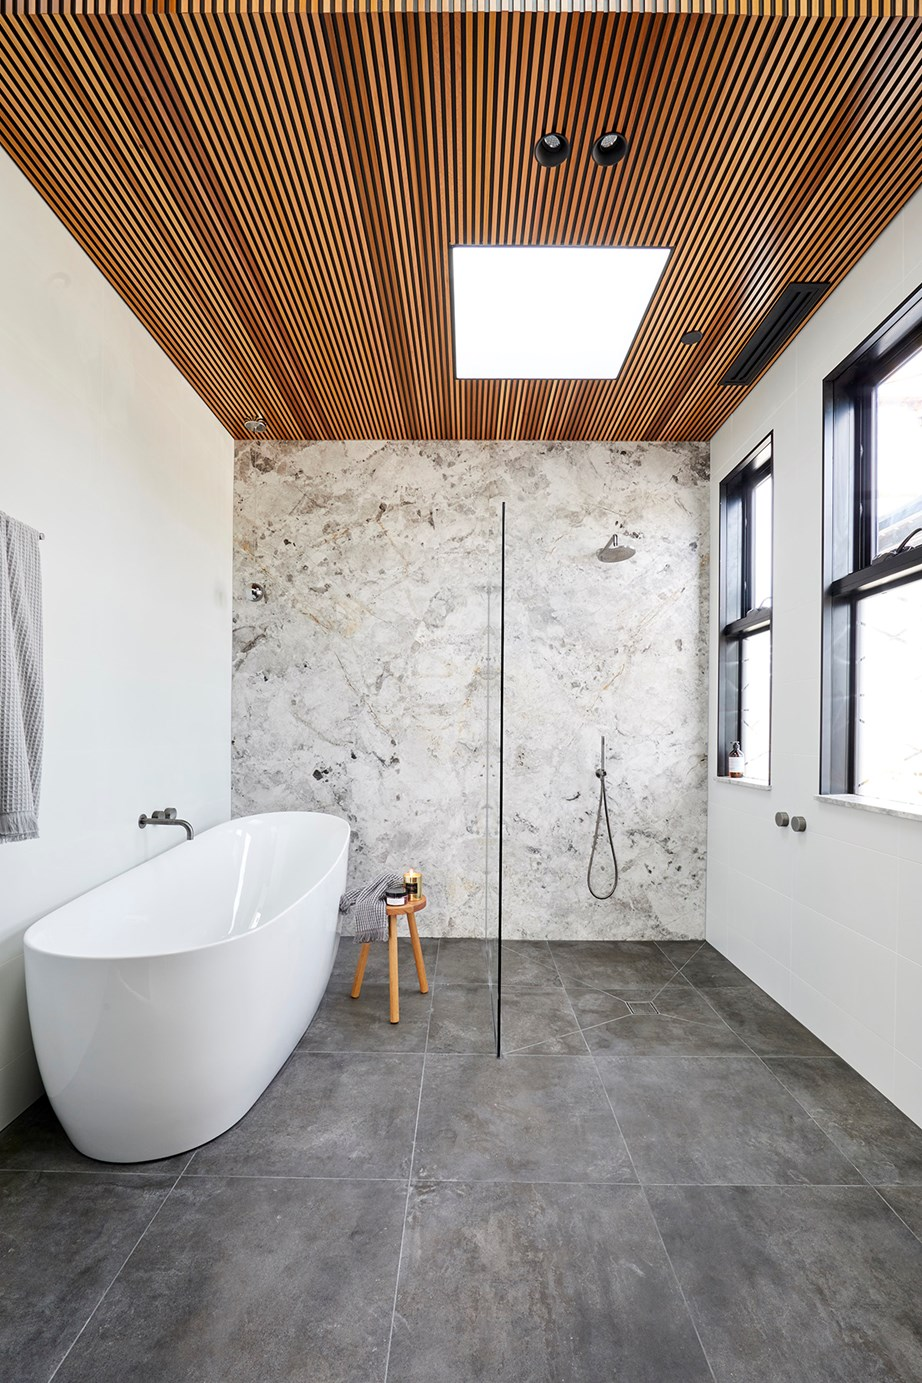 "**The Block 2018: Bianca and Carla** Who could forget that natural stone feature wall stole in [Bianca and Carla's penthouse](https://www.homestolove.com.au/the-block-2018-bianca-and-carla-apartment-tour-19124|target=""_blank"") bathroom. With the soaring ceiling, timber panelling and stunning vanity, we're still surprised it wasn't a winner!"